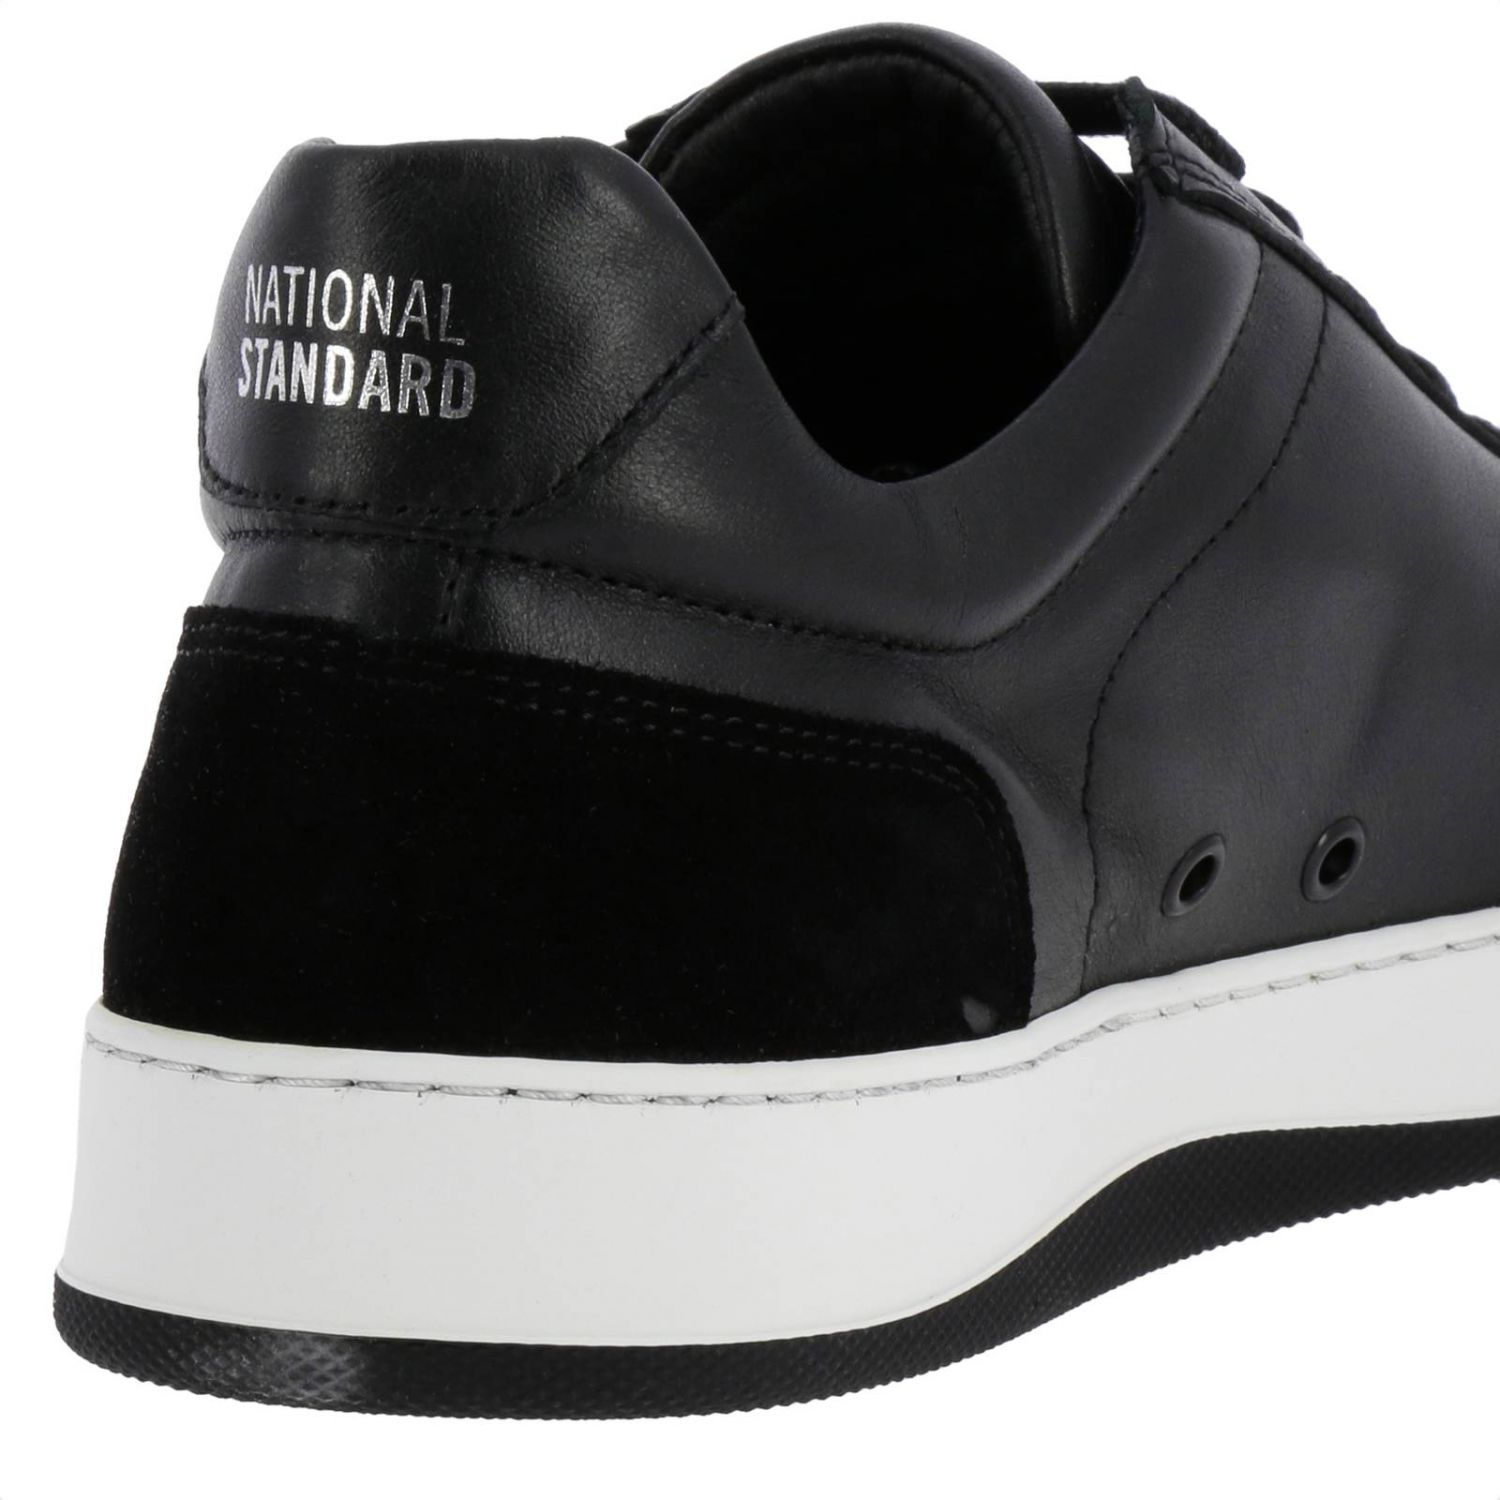 Trainers men National Standard black 4